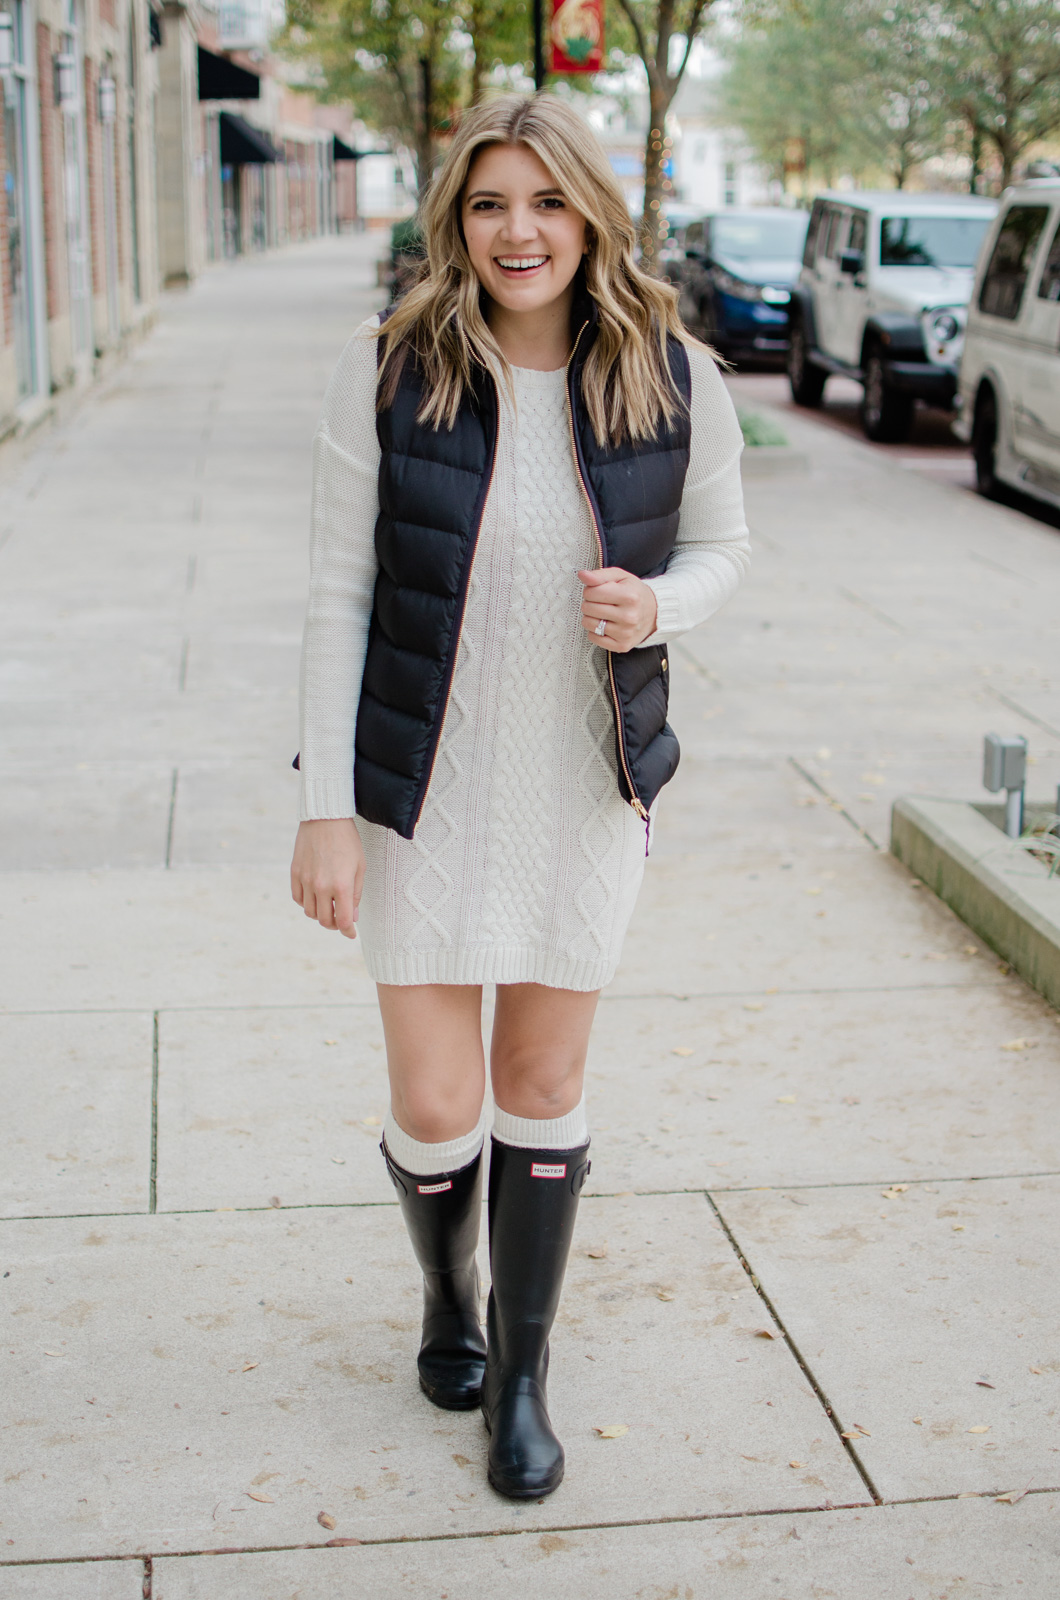 six puffer vest outfits - head to the blog to see all the ideas and get details of this cable knit sweater dress look! bylaurenm.com